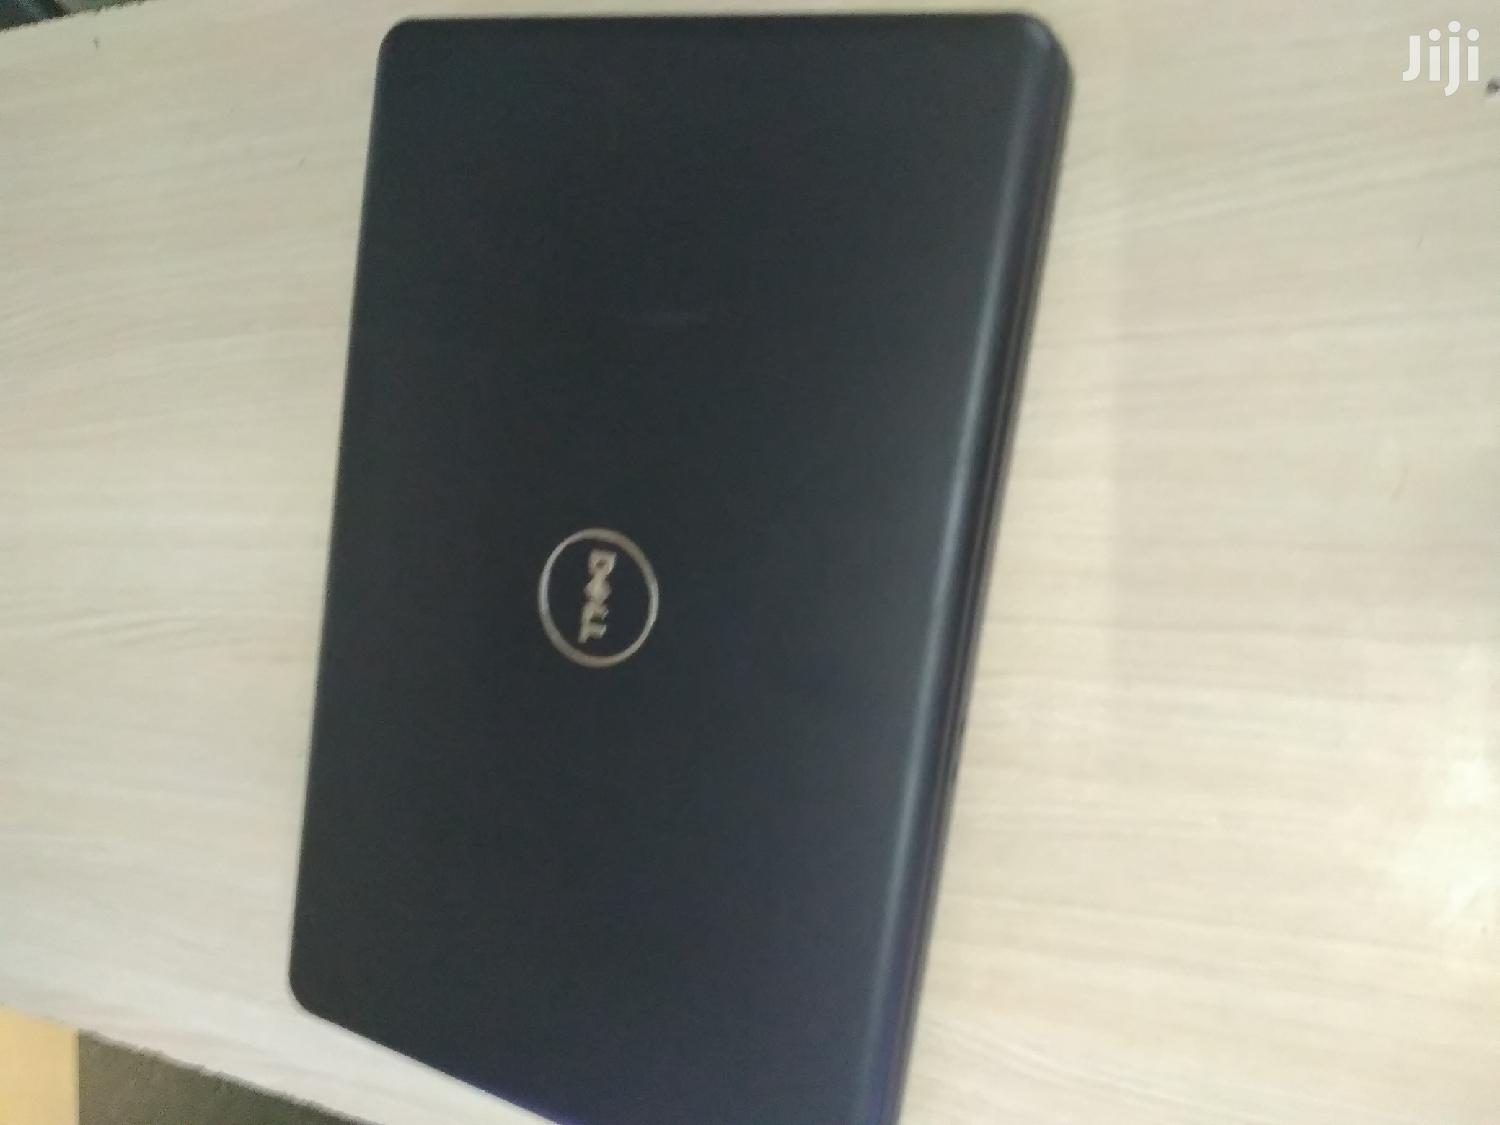 Laptop Dell Inspiron 11 3000 4GB Intel Core i3 HDD 500GB | Laptops & Computers for sale in Kampala, Central Region, Uganda